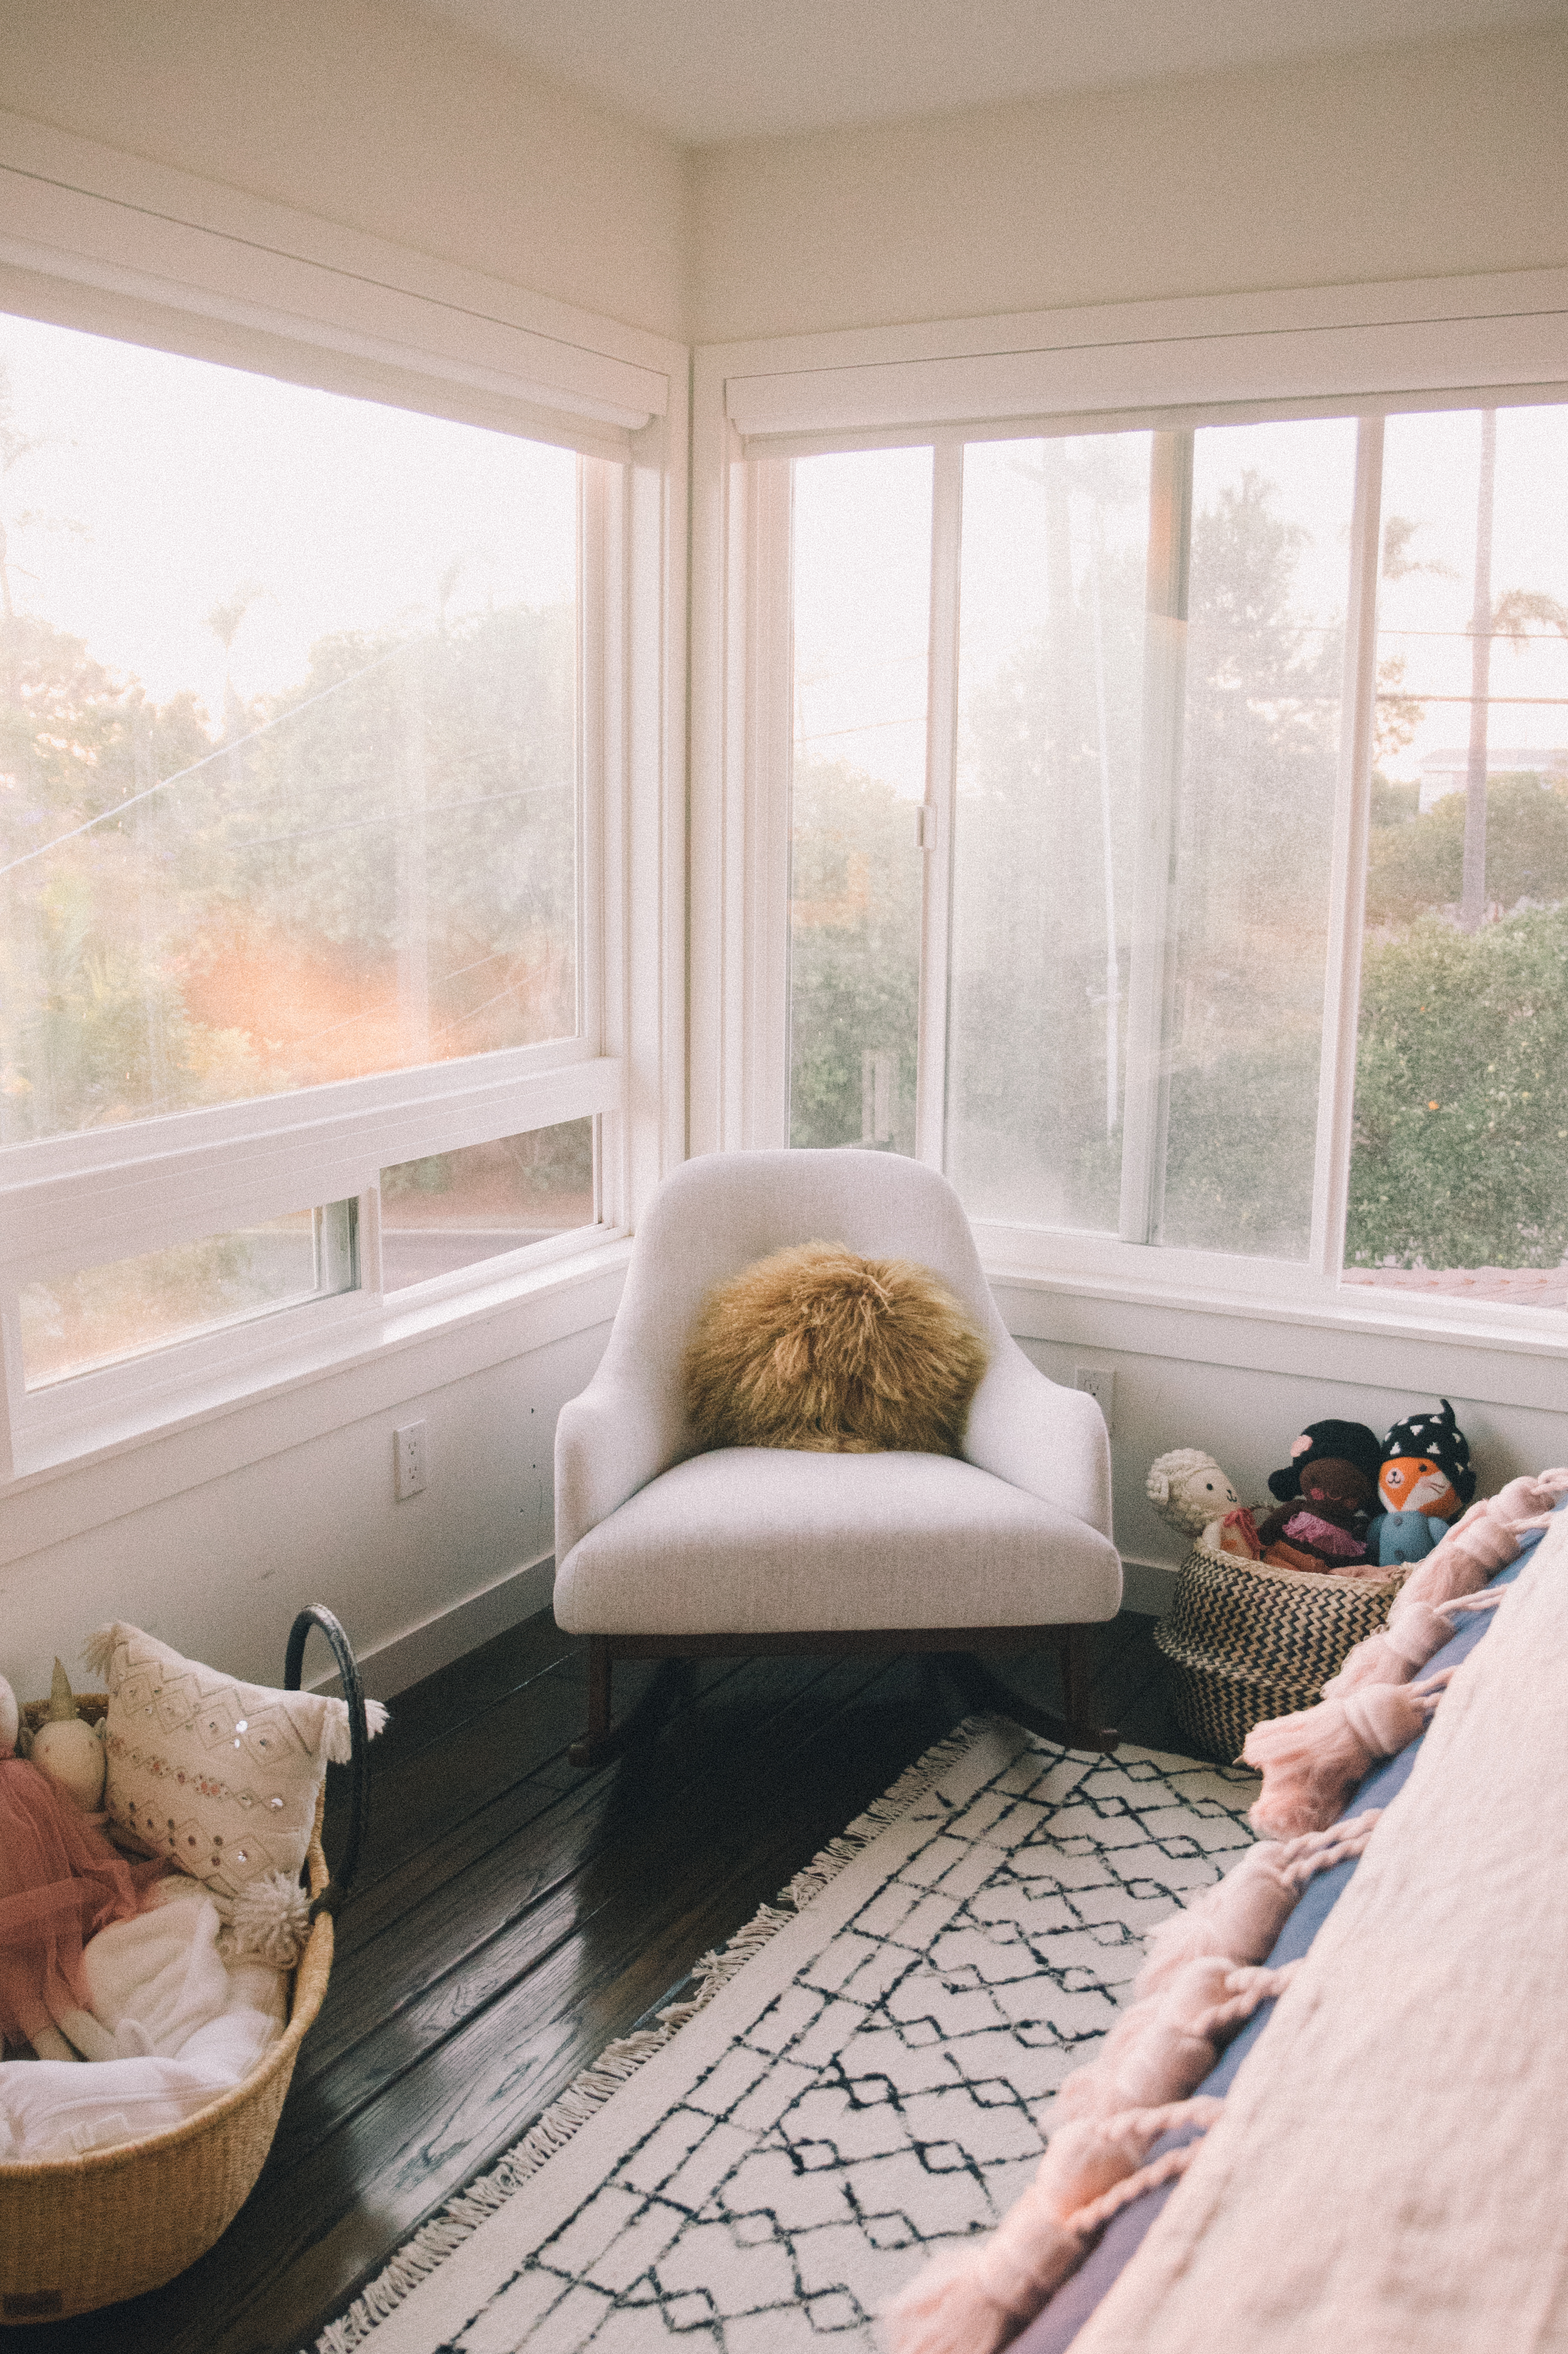 Nursery Tour: How to make the most of a small space